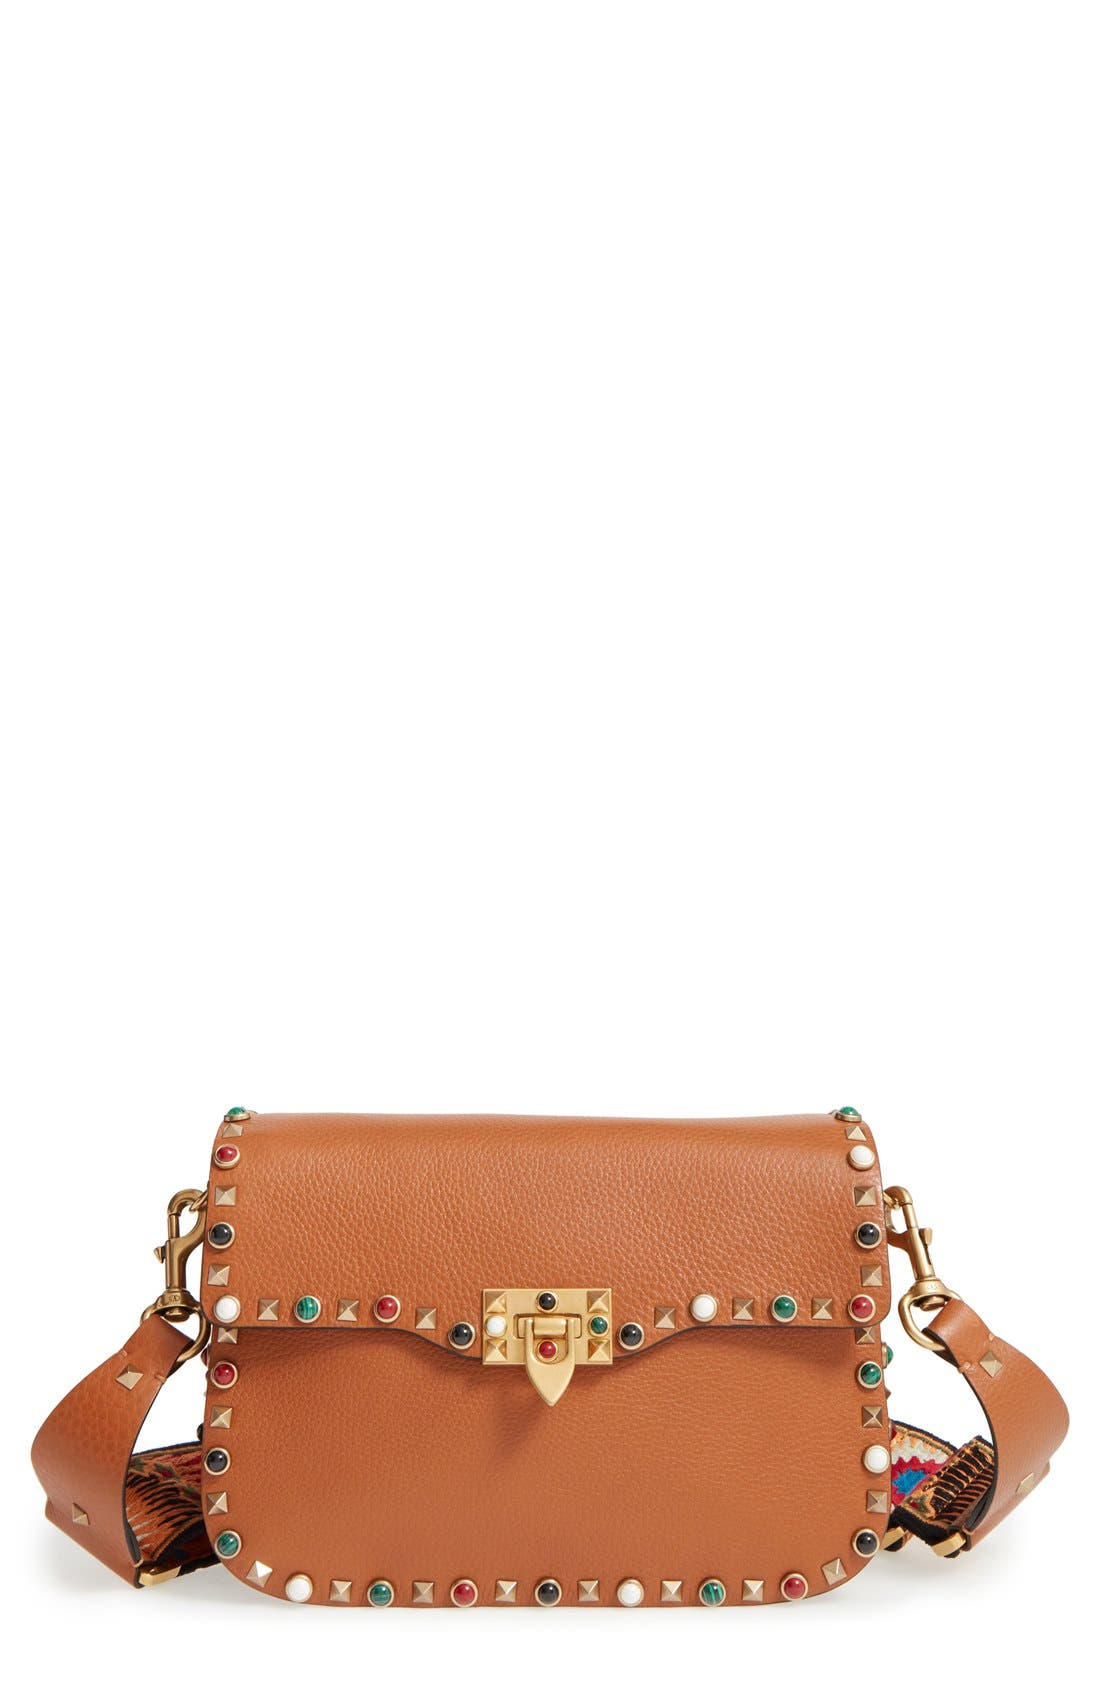 Main Image - Valentino 'Rolling Rockstud' Guitar Strap Calfskin Leather Shoulder Bag